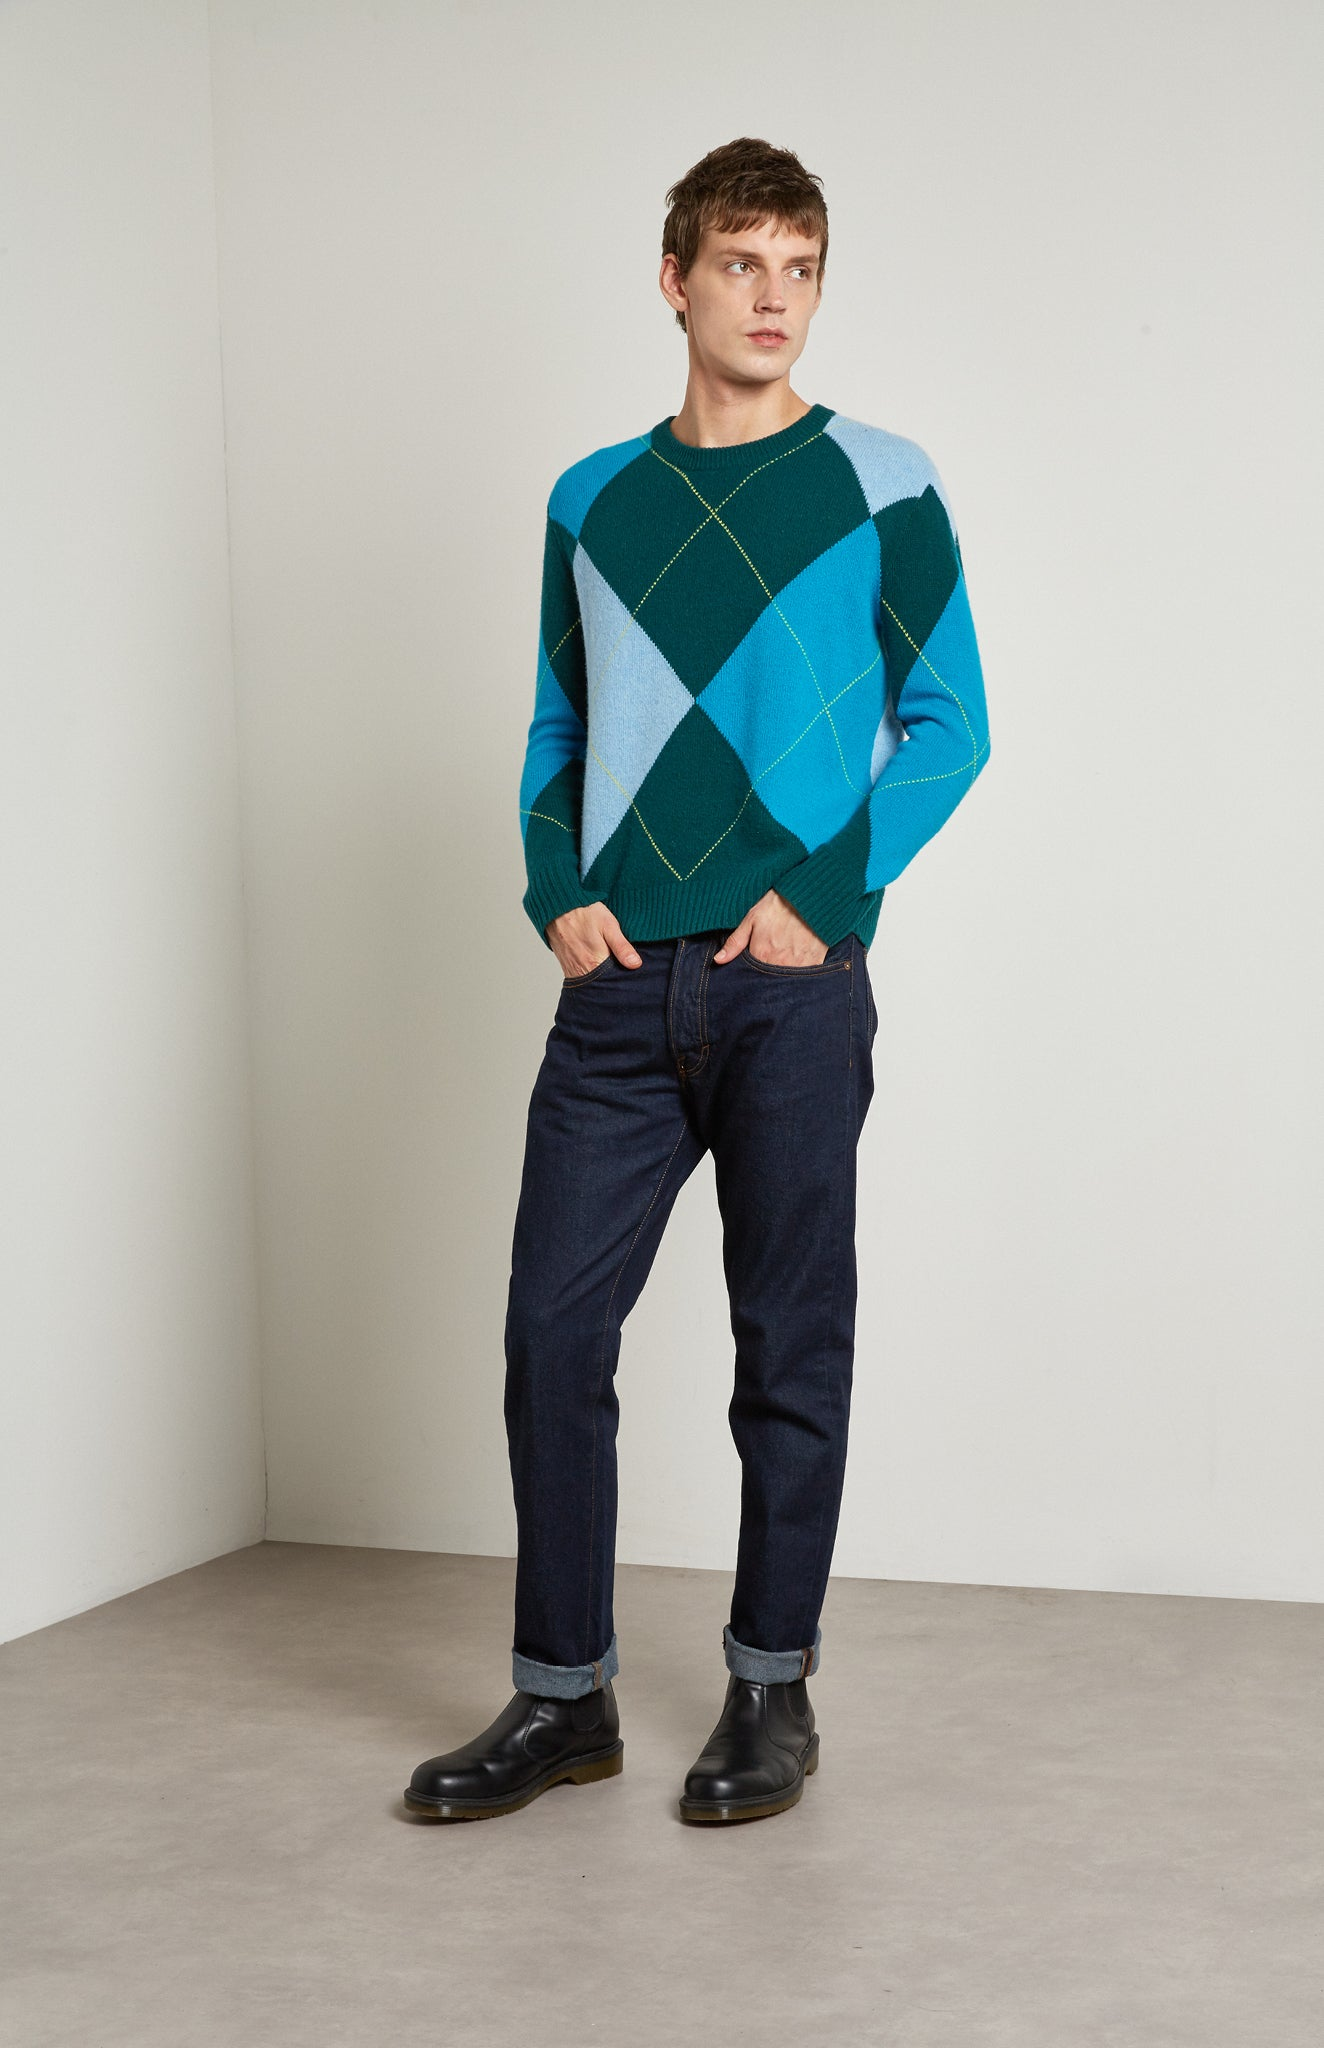 Pringle Reissued Unisex Grand Argyle Jumper In Green on male model